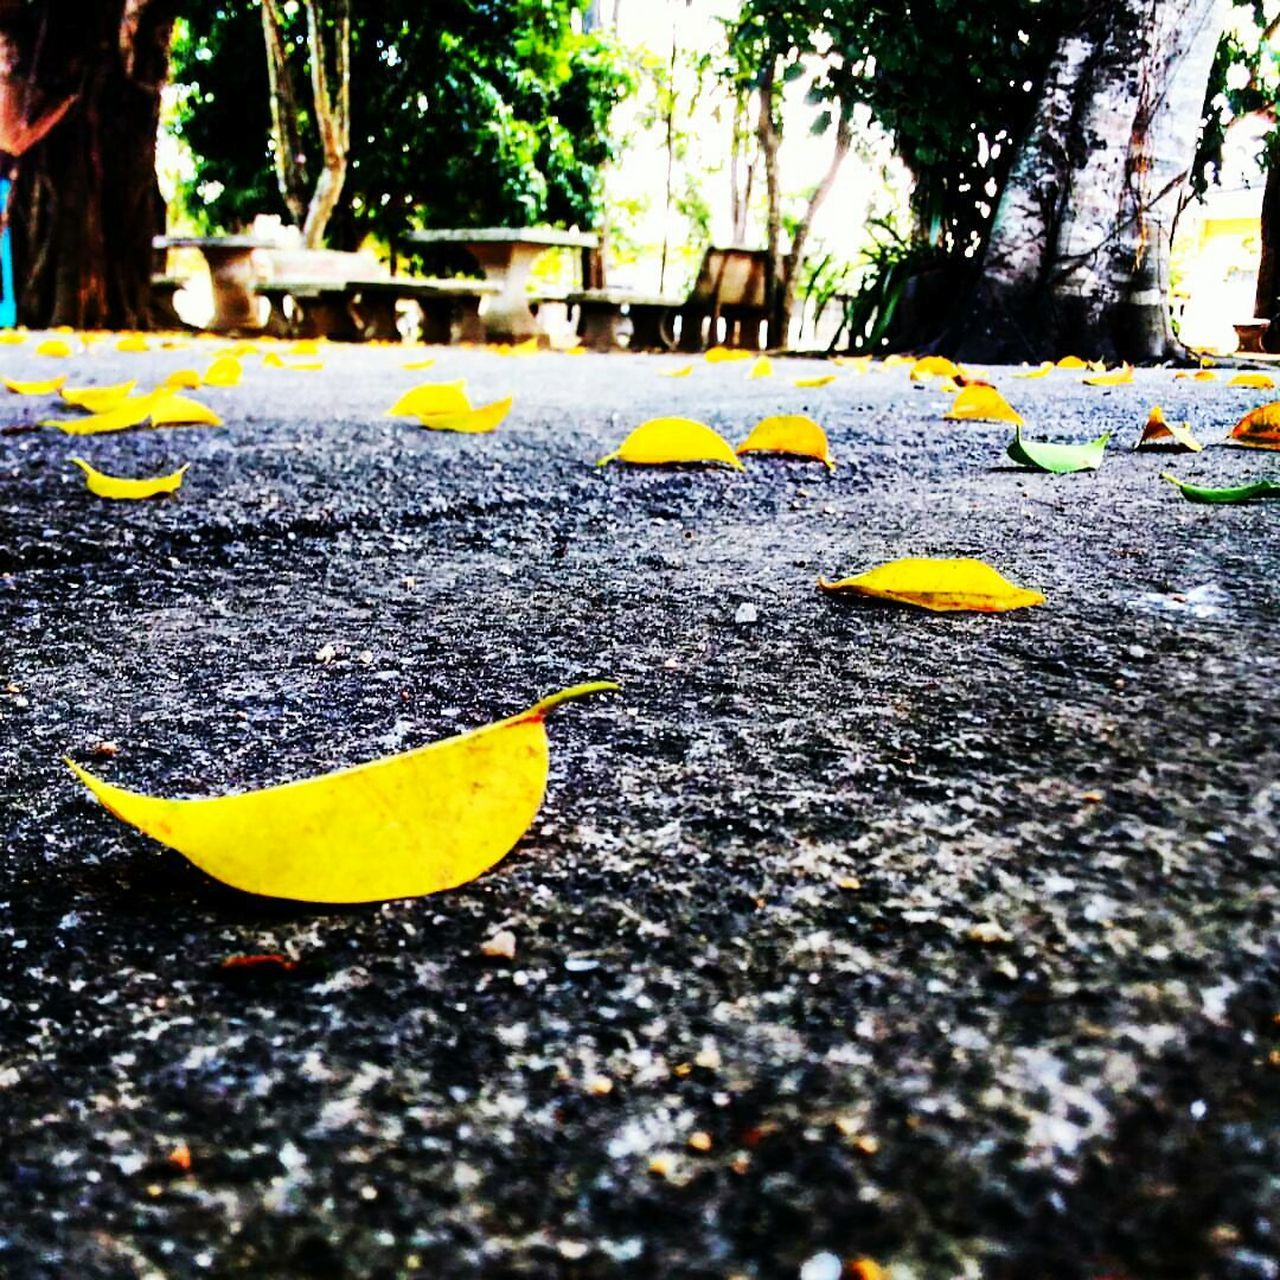 yellow, outdoors, leaf, day, tree, street, nature, no people, fragility, road, tree trunk, close-up, beauty in nature, freshness